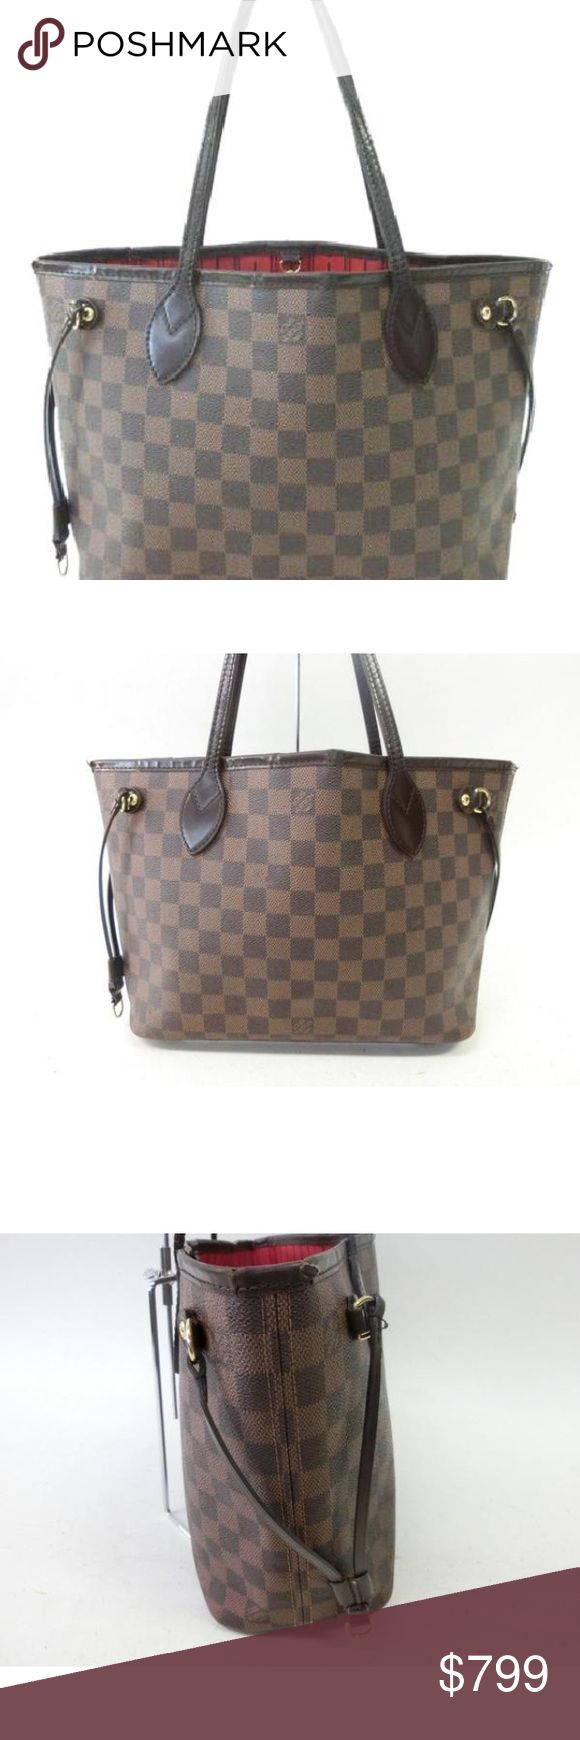 Louis Vuitton neverfull damier ebene pm Here she is the ever so popular neverfull in beautiful damier ebene! This is the must have bag right now! Get yours here at a fraction of the cost. Pre-loved with noticeable signs of wear on trim ware and scuffing. Louis Vuitton Bags Totes